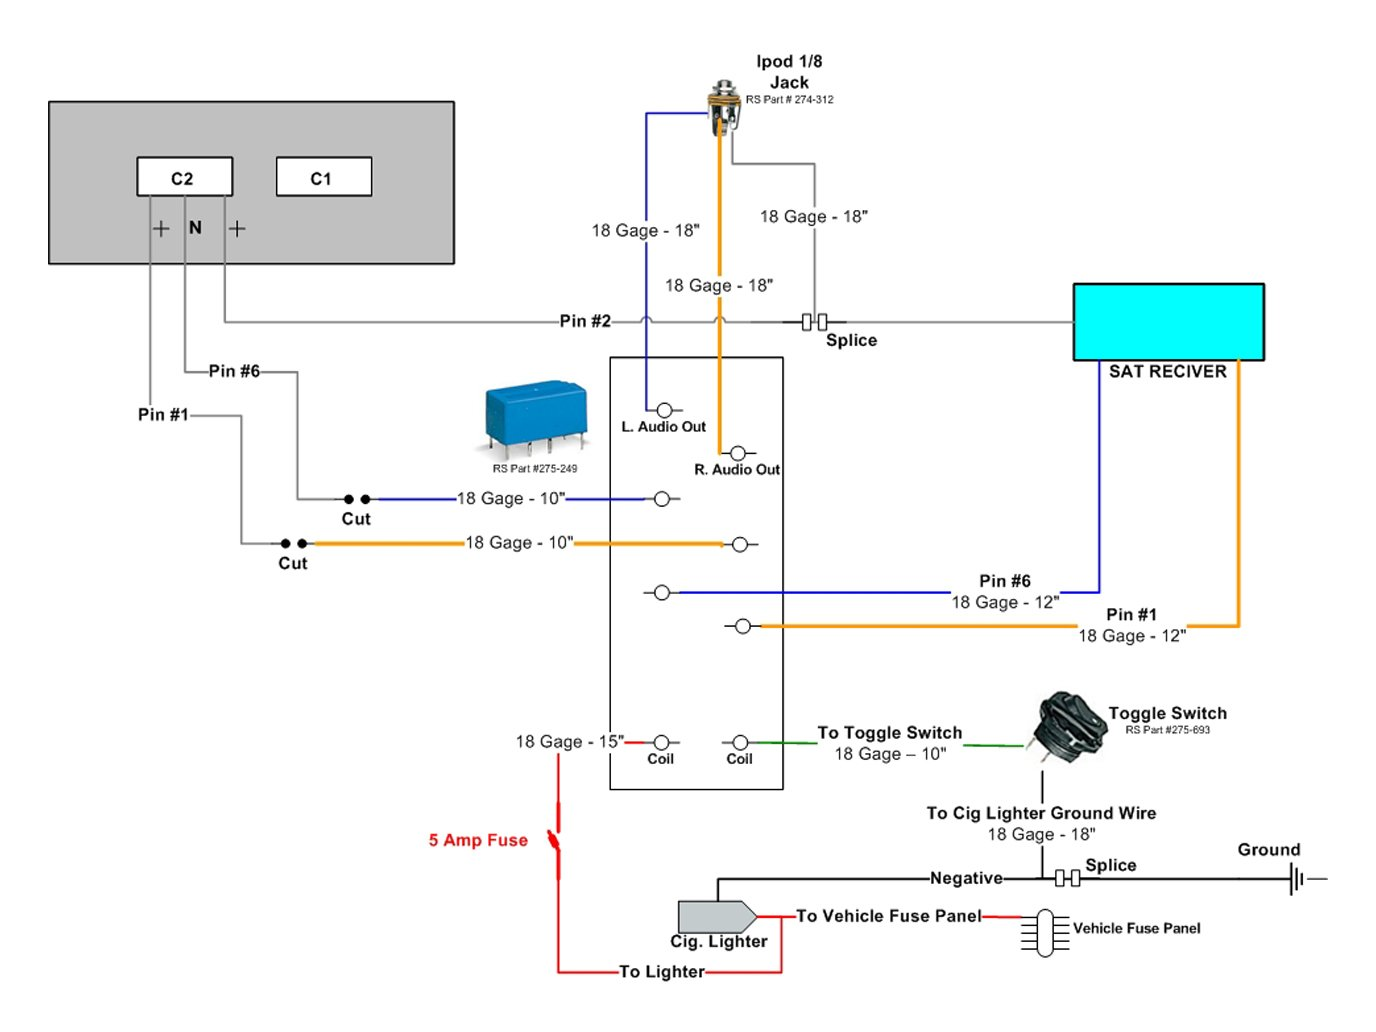 ford ipod auxiliary wiring diagram tech aux input ipod in factory radio chrysler 300c   srt8 forums  tech aux input ipod in factory radio